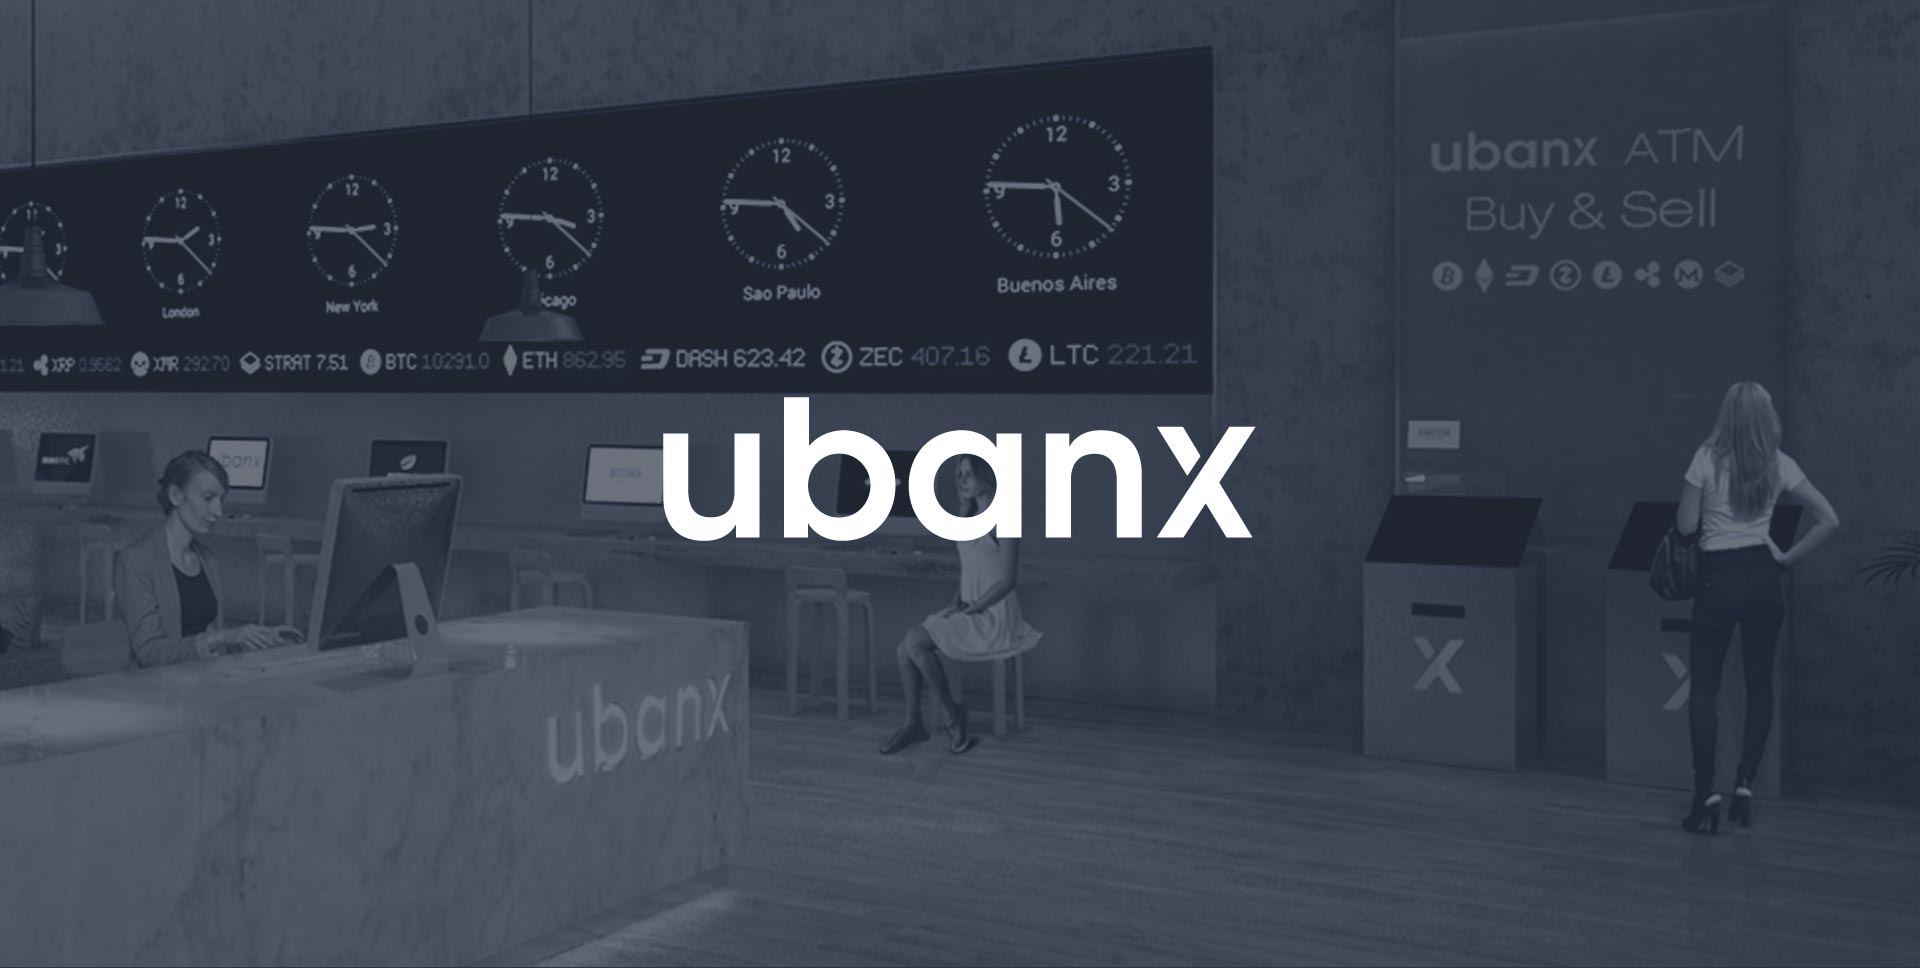 Photo of a Ubanx store with Ubanx logo overlaid